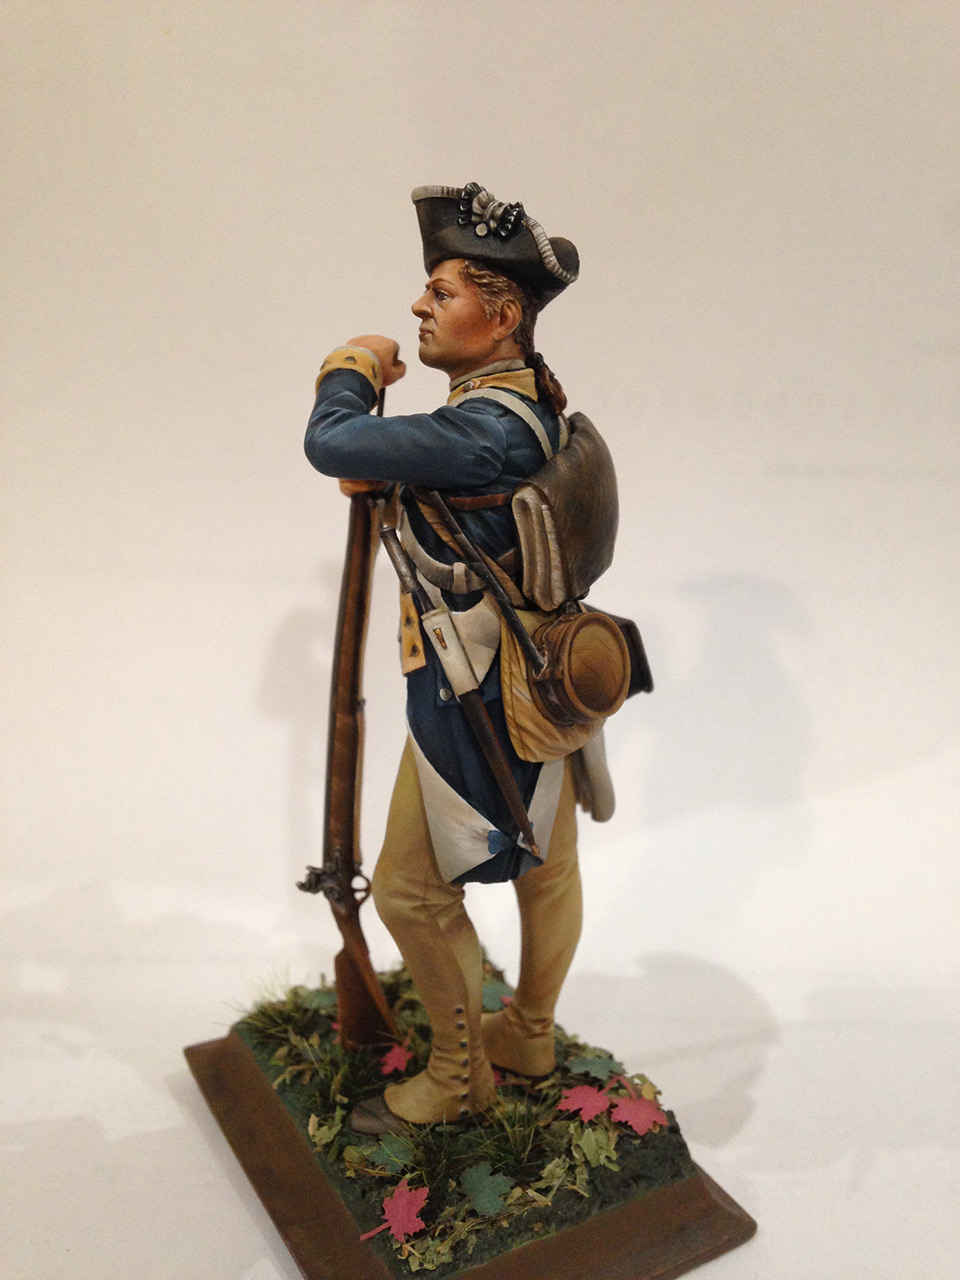 Figures: Private, 1st New York regt. of Continental Army, photo #2